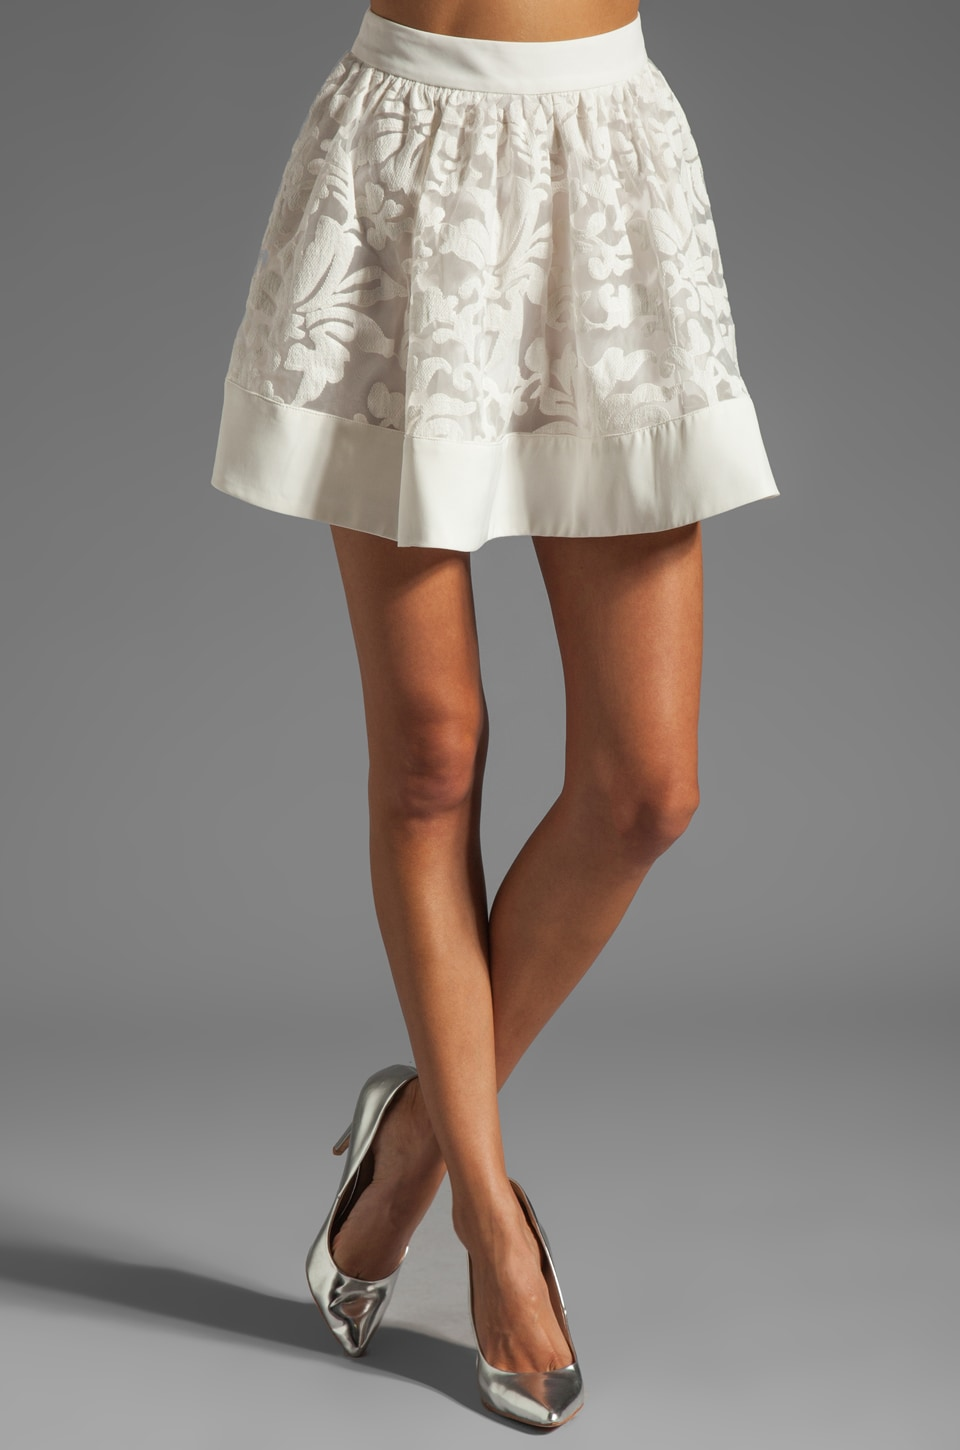 C/MEO Candy Man Skirt in White